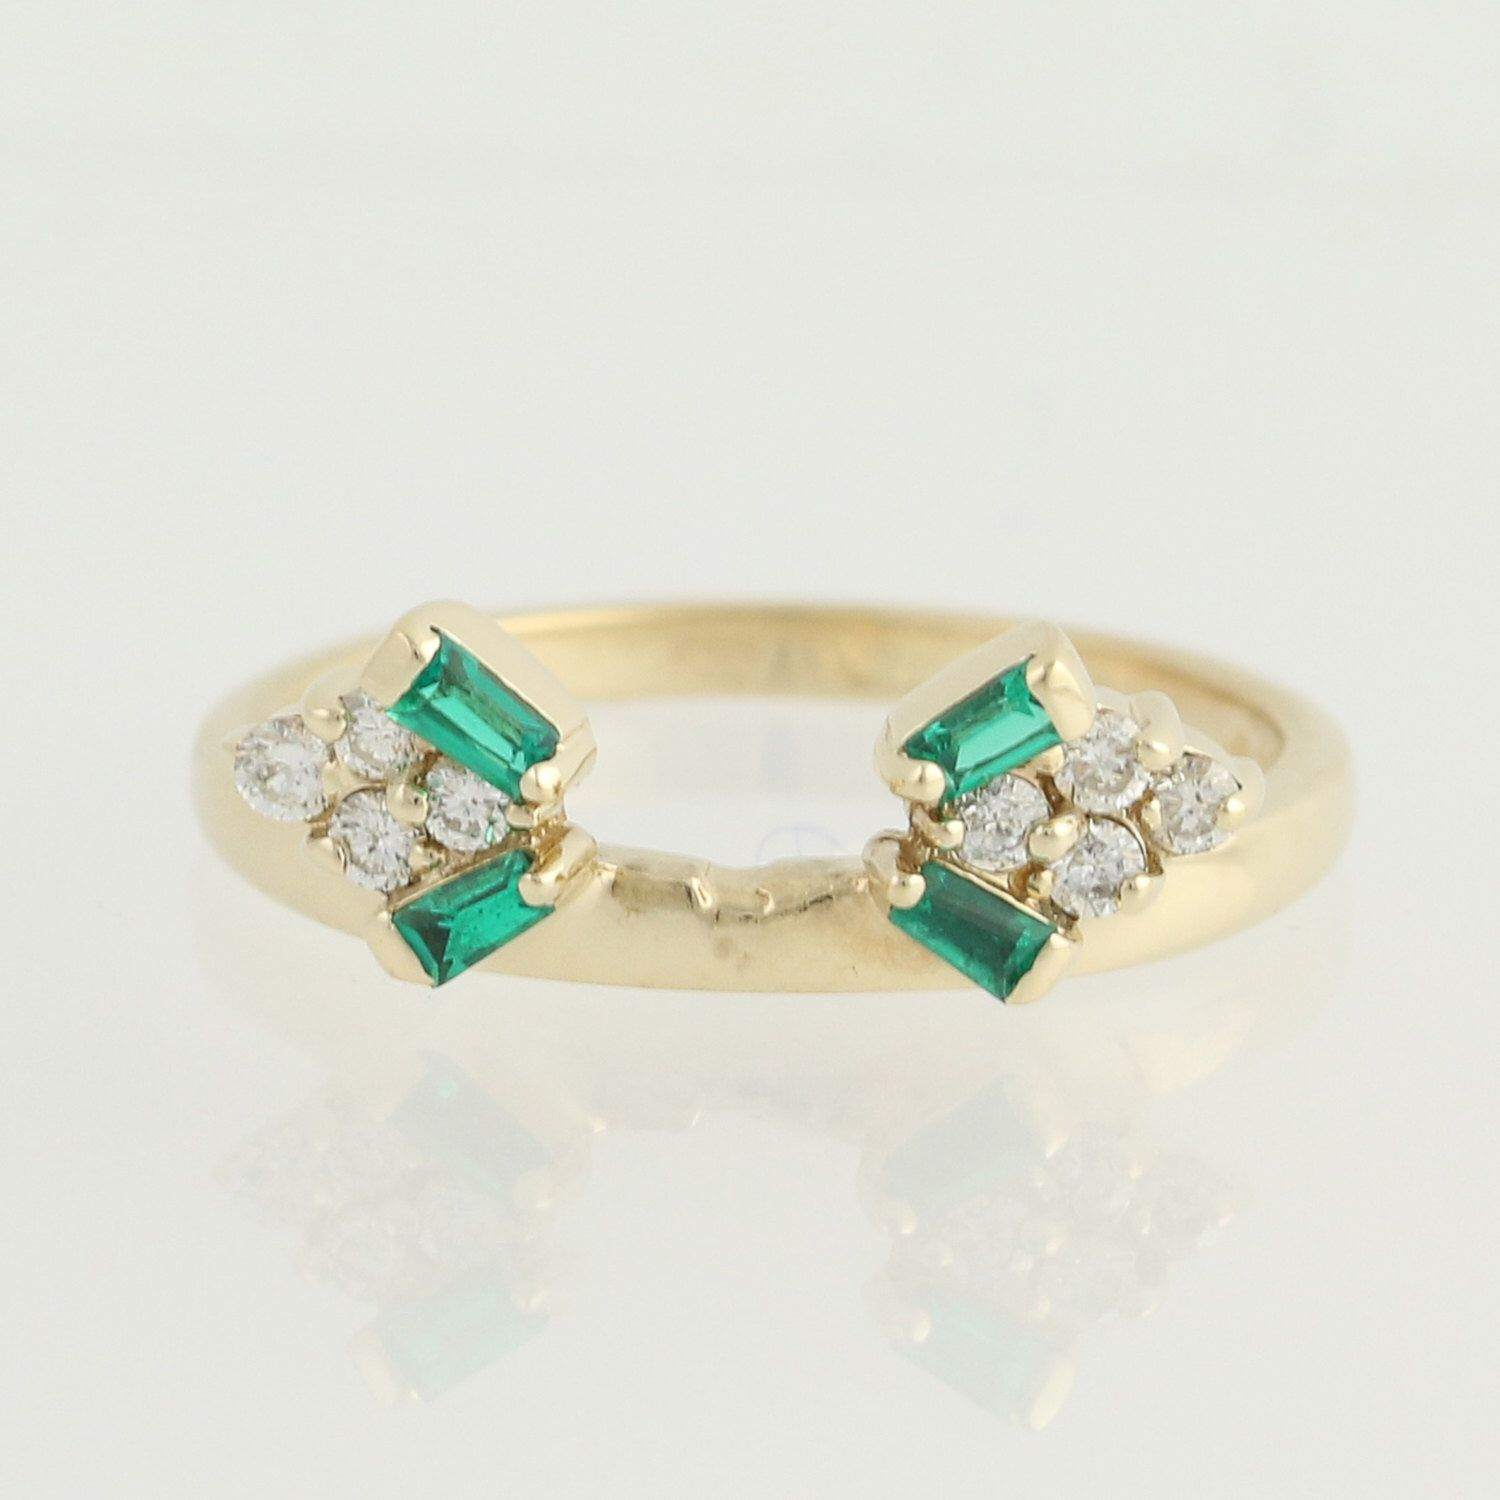 emerald rings differences between the real and synthetic. Synthetic Emerald \u0026 Diamond Enhancer Wedding Band - 14k Yellow Gold Ring .24ctw L9988 By Rings Differences Between The Real And E